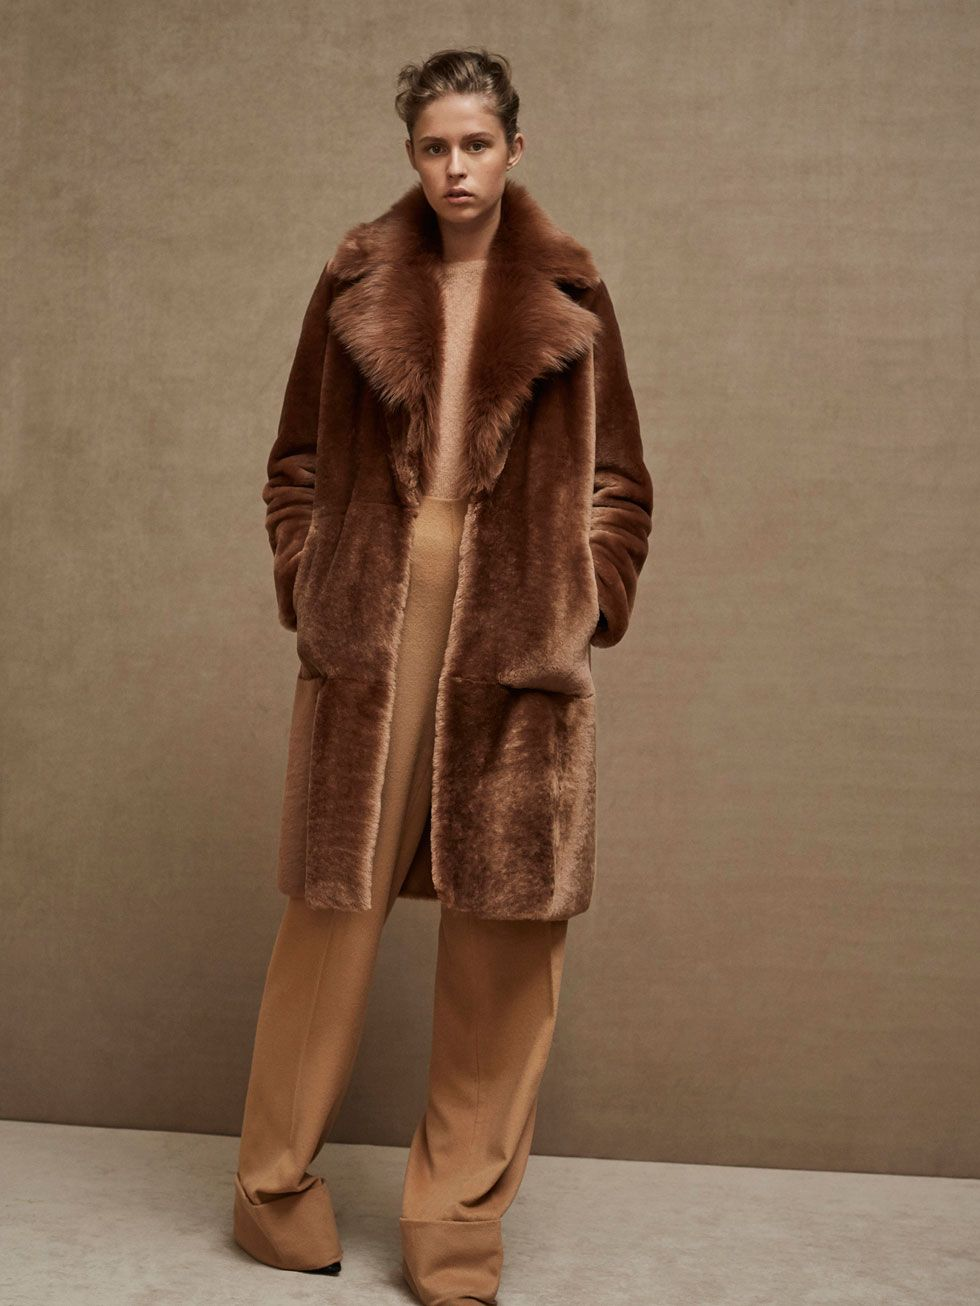 Spring Summer 2017 Women S Limited Edition Lambskin Fur Coat At Massimo Dutti For 899 Effortless Elegance Fur Coat Fashion Fur Coats Women Fur Coat